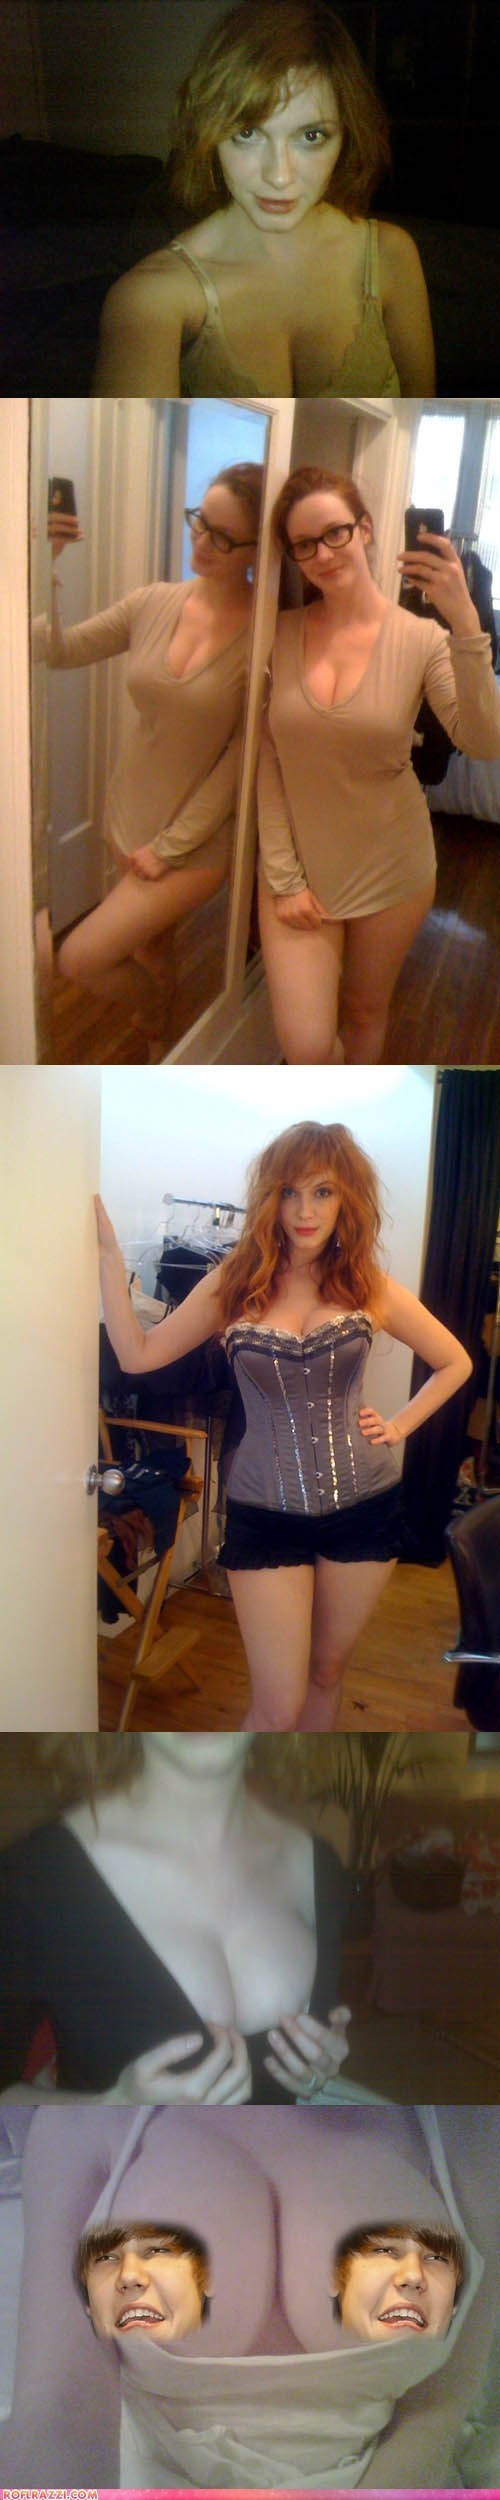 celeb,Christina Hendricks,hacked,Hall of Fame,leak,Photo,topless